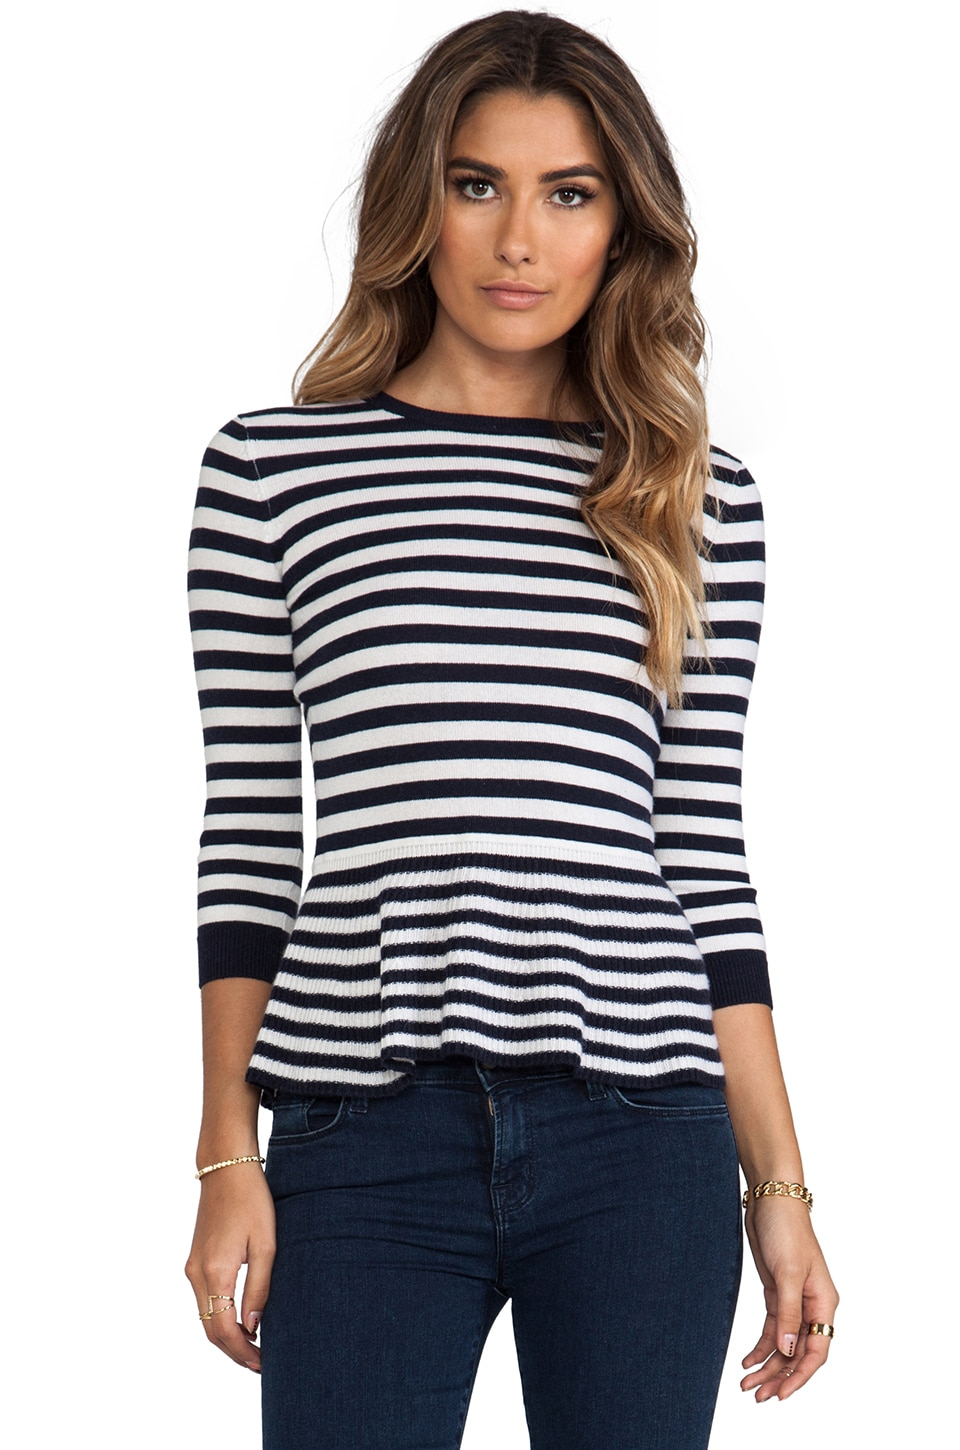 Autumn Cashmere Striped 3/4 Sleeve Peplum Top in Navy & White & Shock